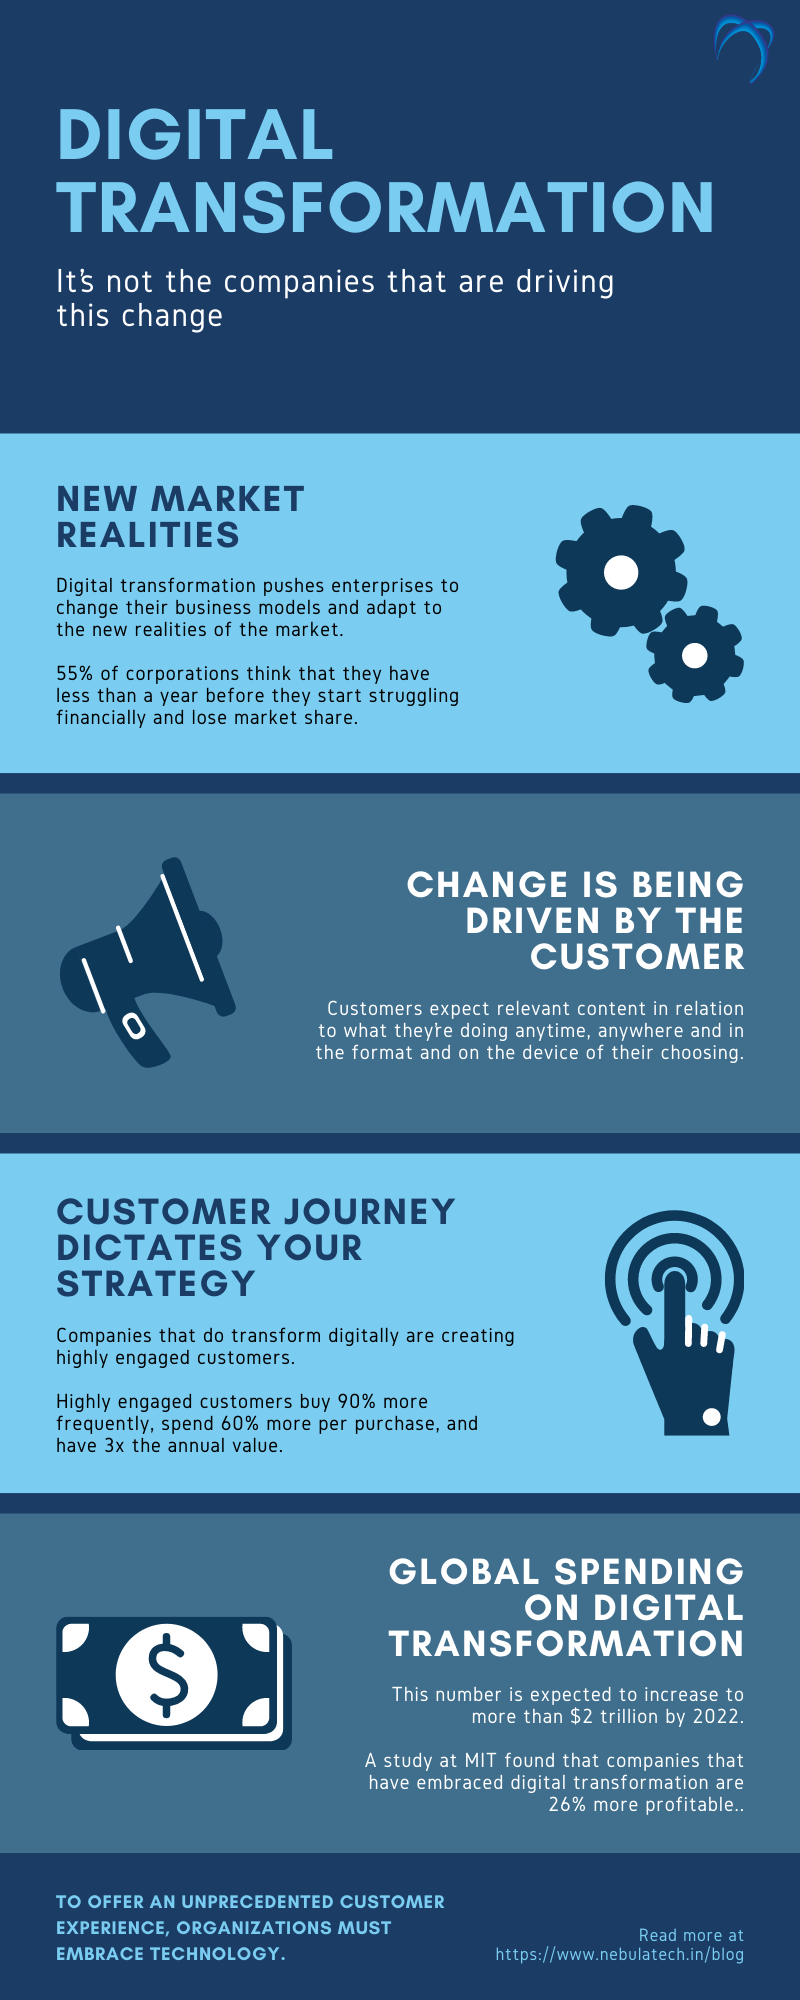 Driving digital transformation for your business